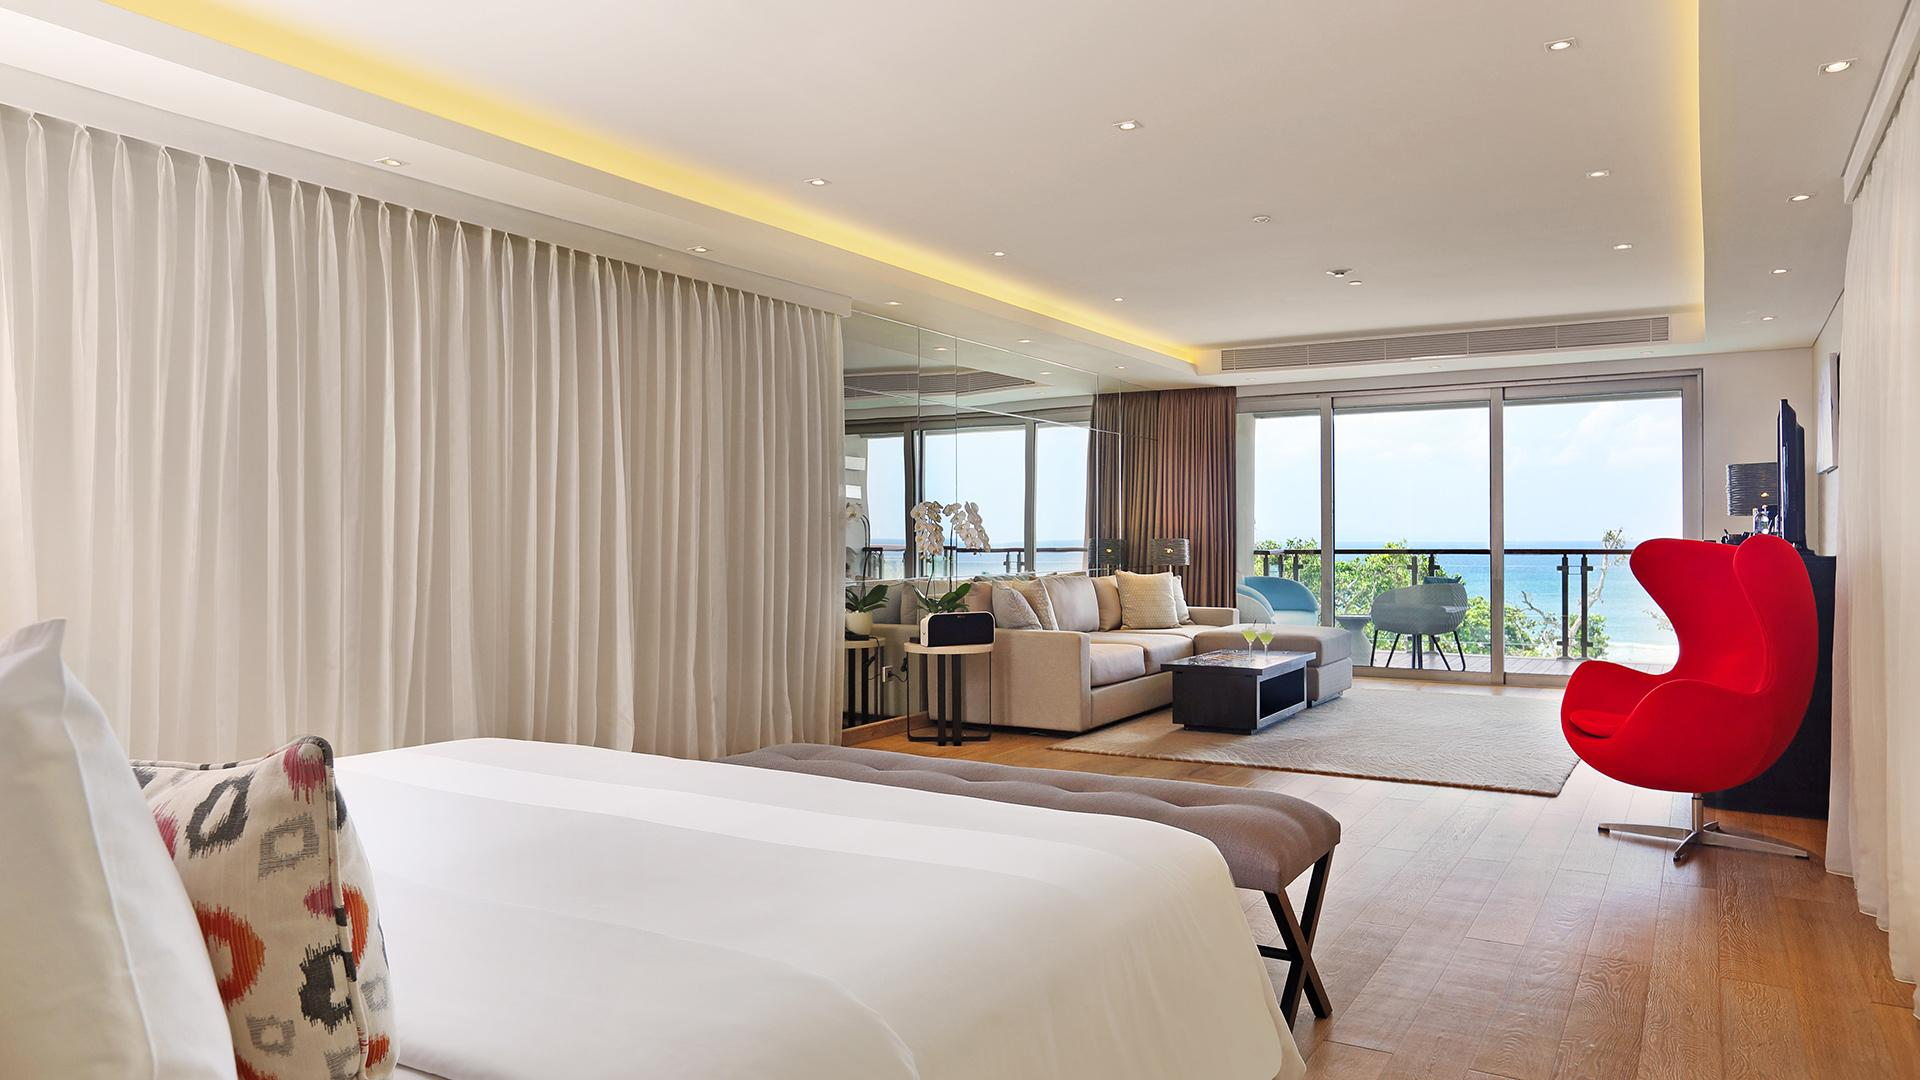 Deluxe Suite Ocean View image 1 at Double-Six Luxury Hotel - July 2019 by Kabupaten Badung, Bali, Indonesia